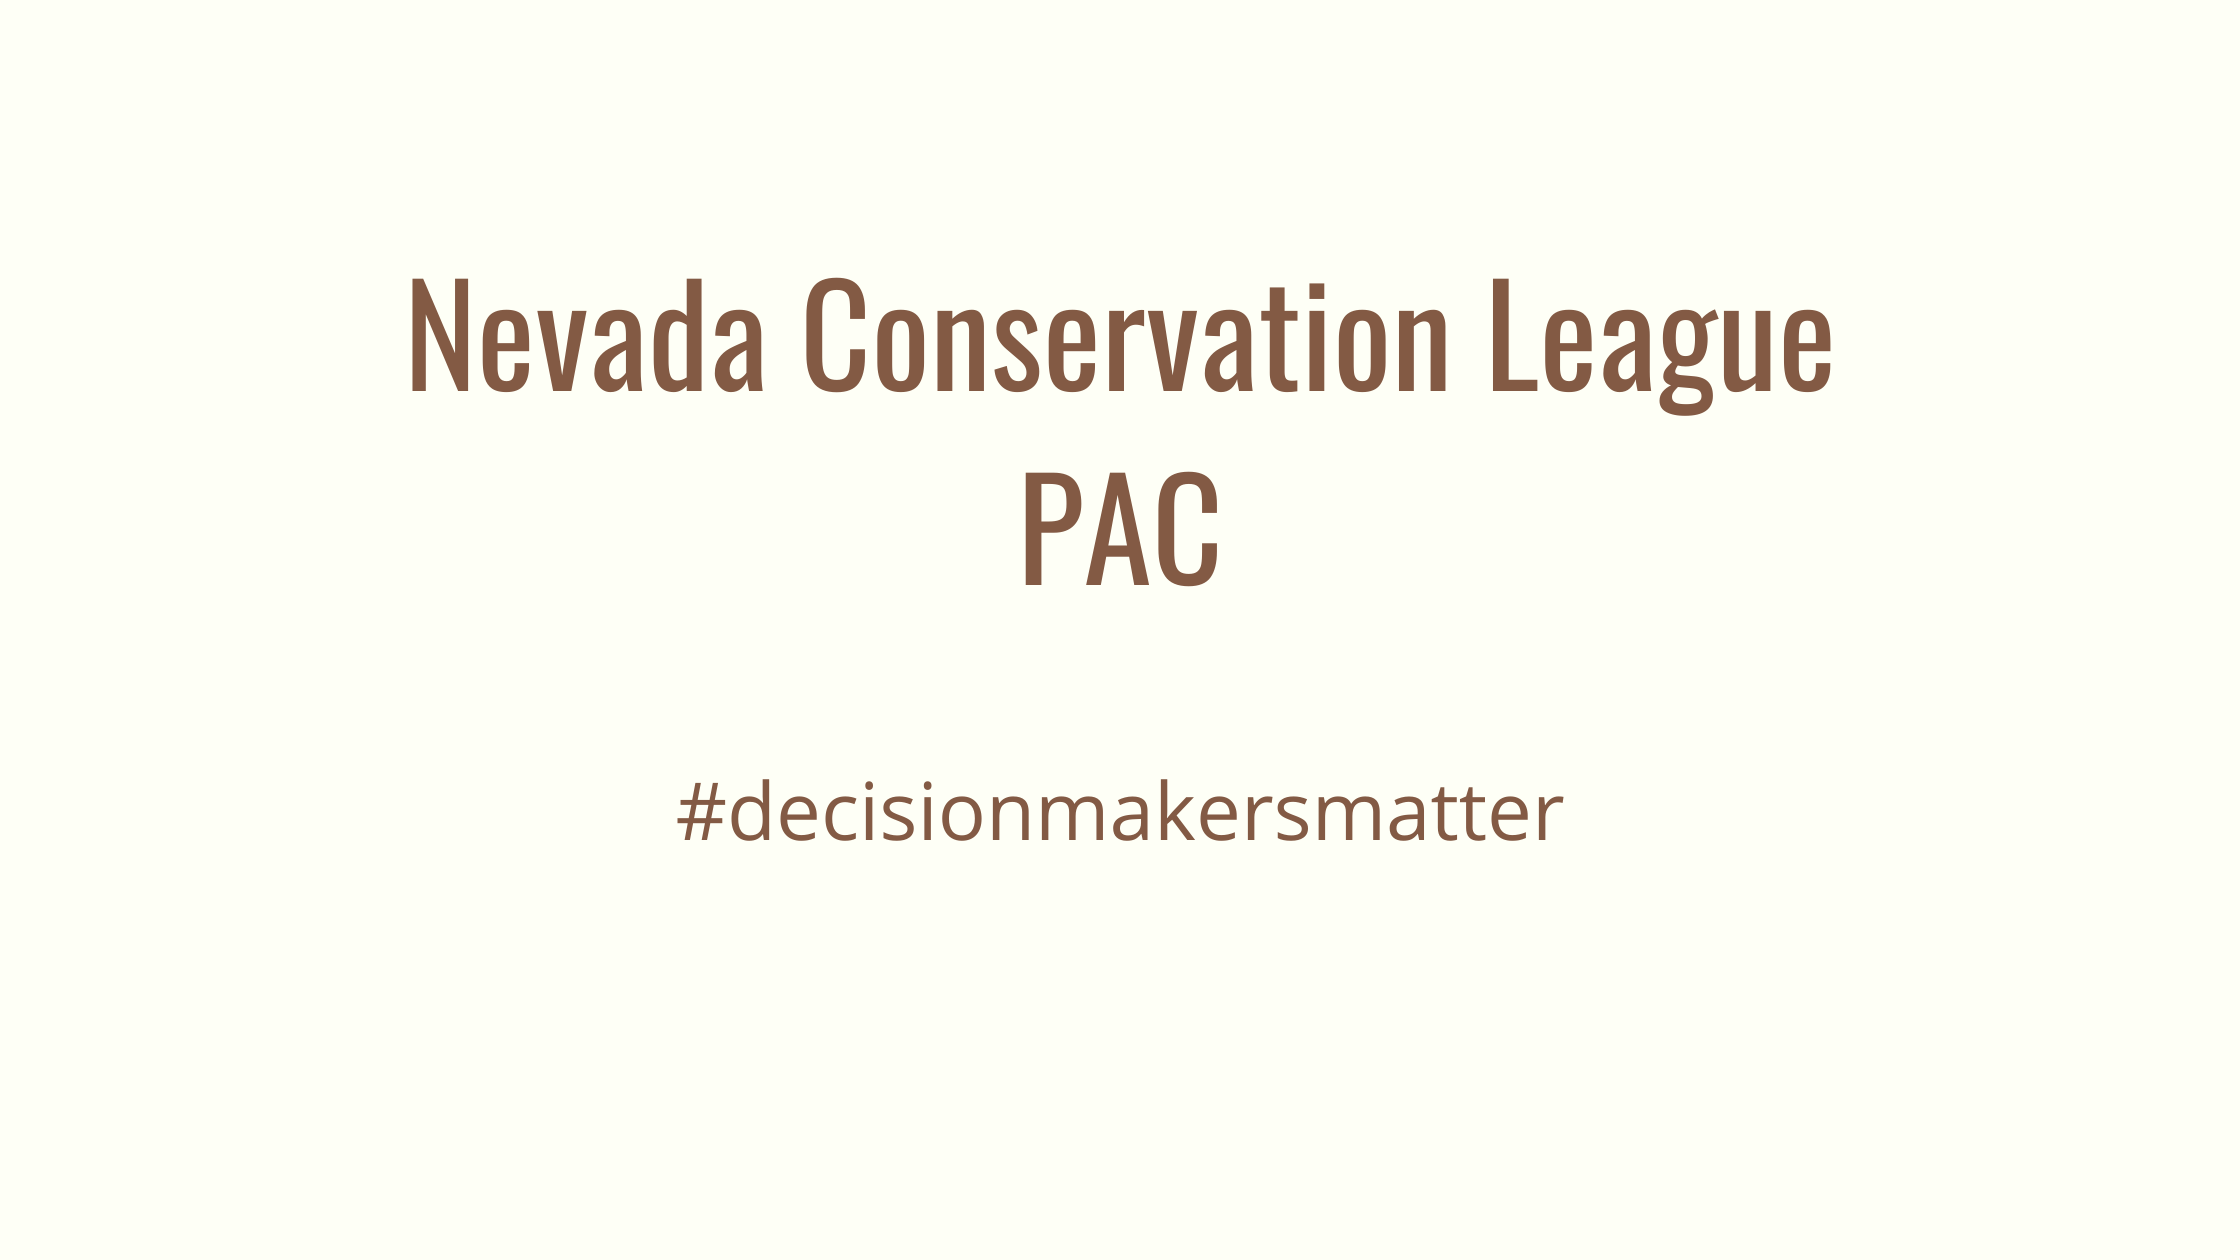 www.NevadaConservationLeague.org